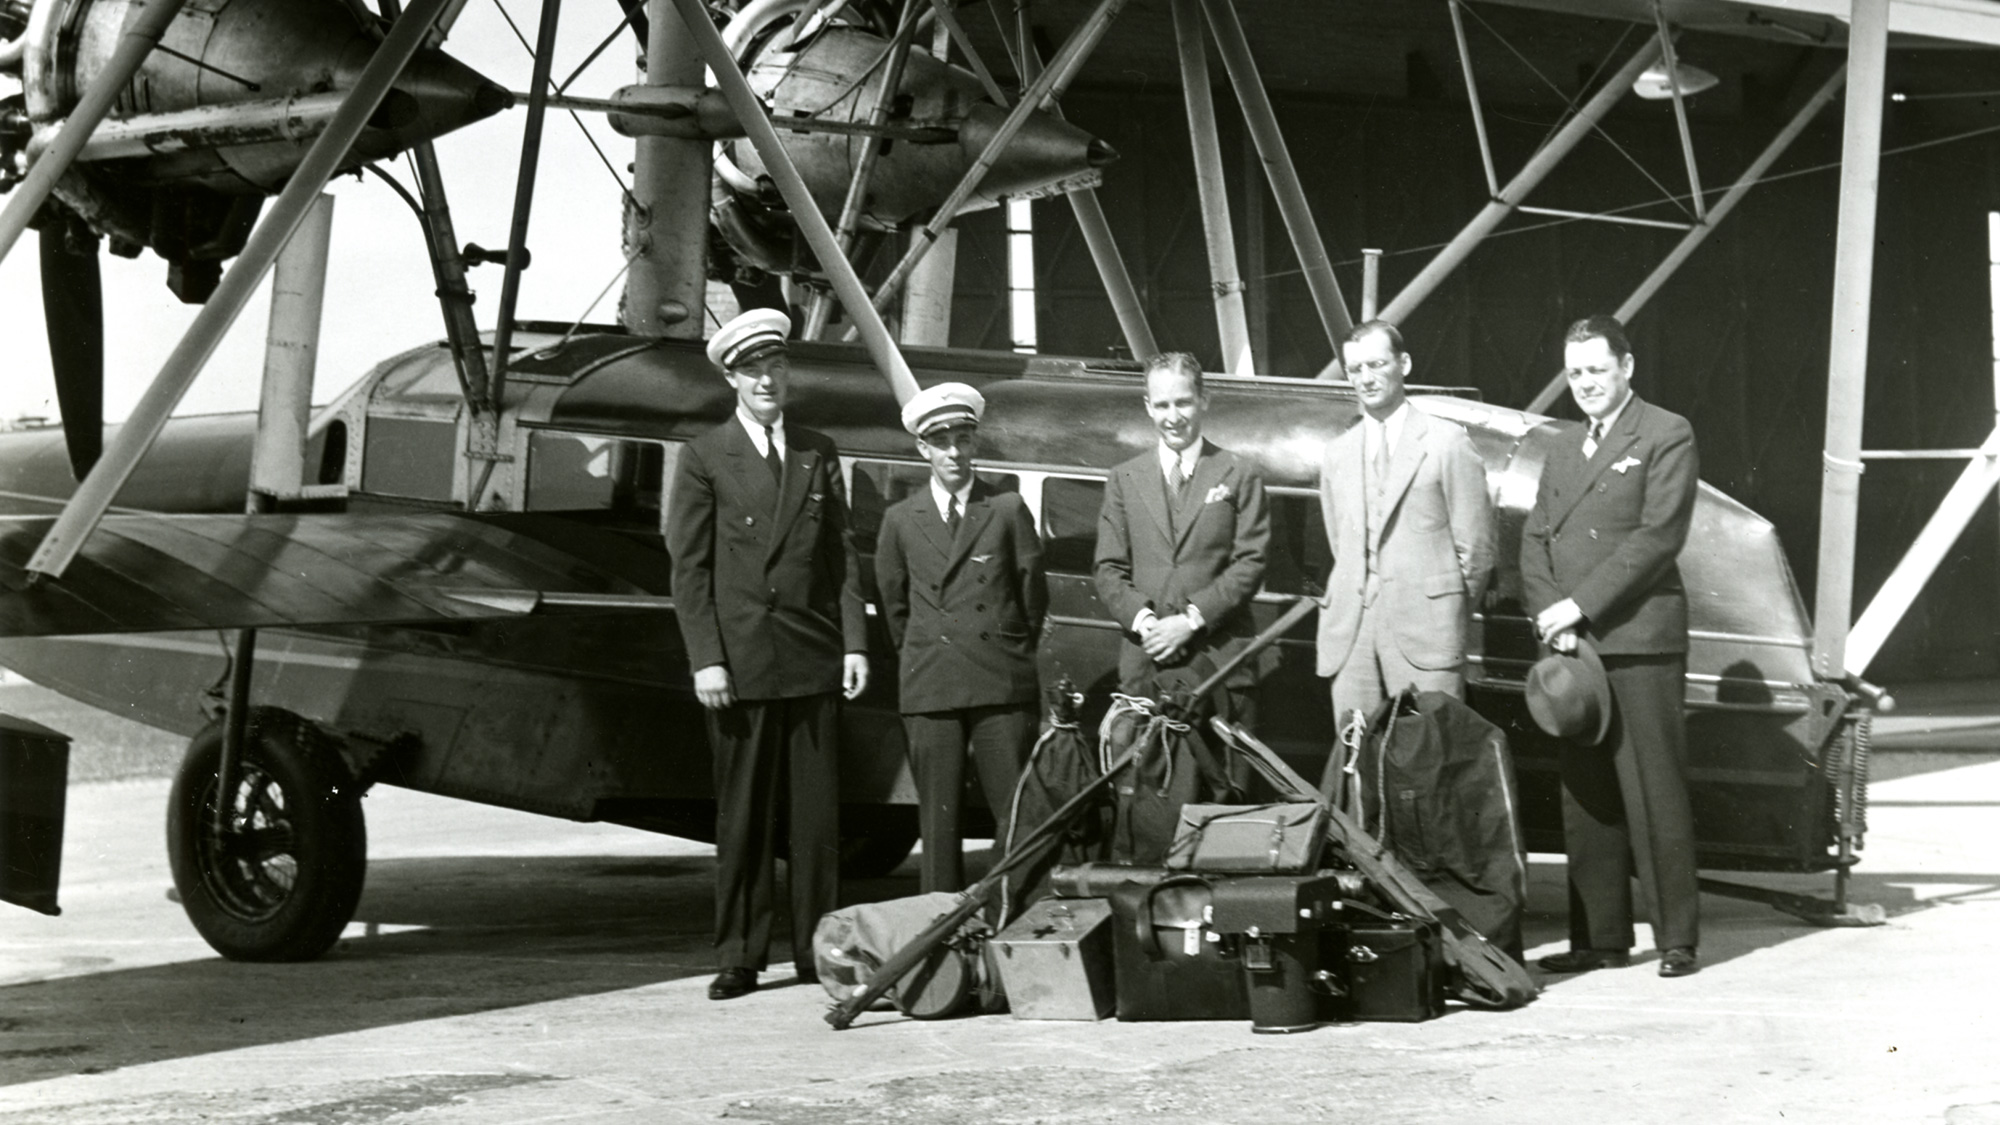 HF Johnson Jr and flight crew of the Carnaúba Sikorsky S-38 amphibian airplane.